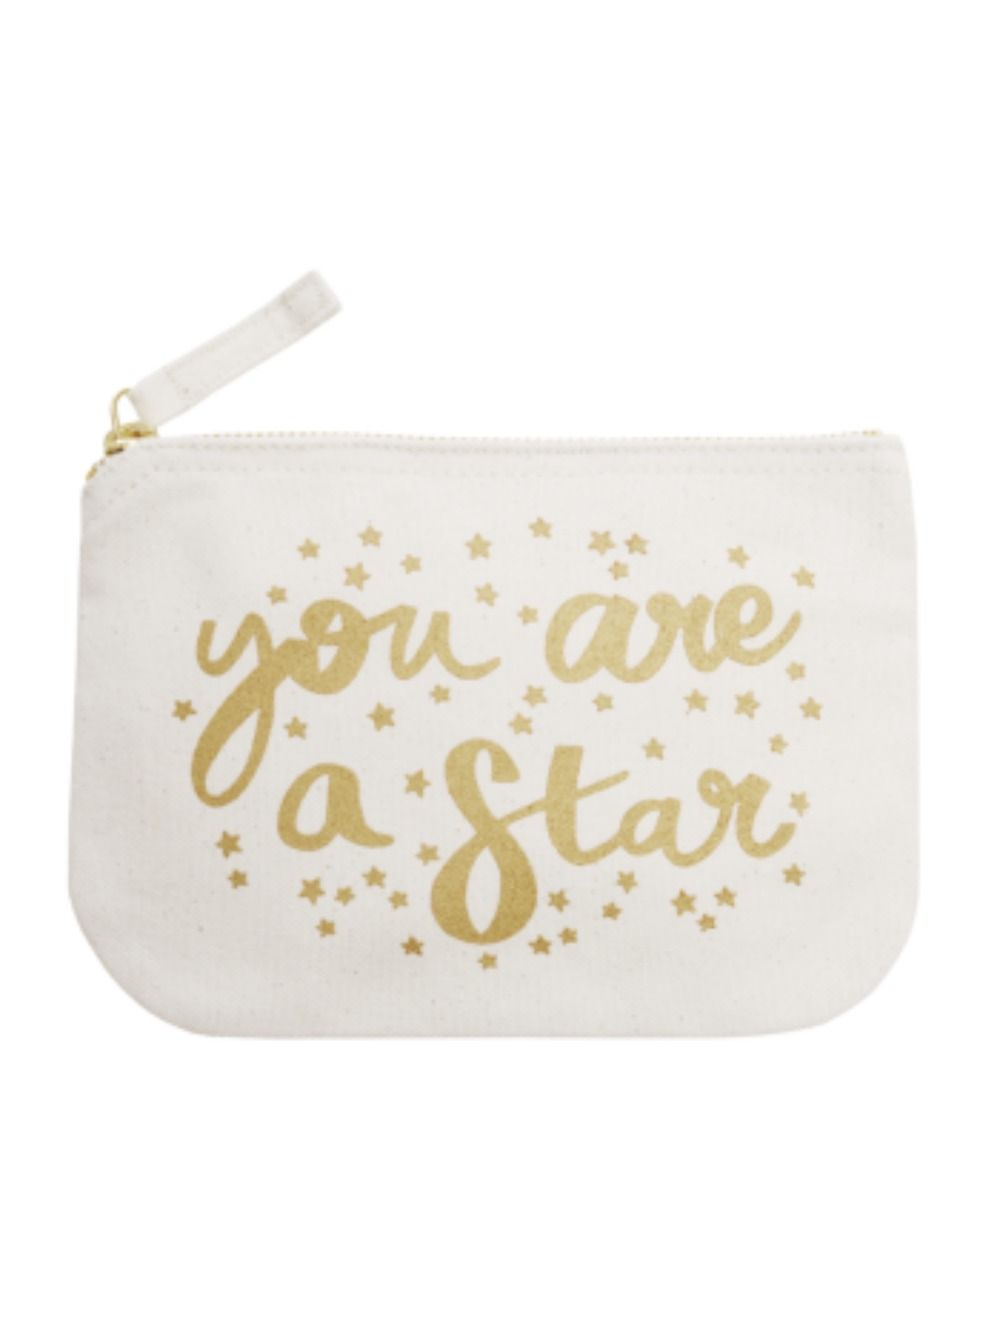 Cotton Pouch - You Are A Star